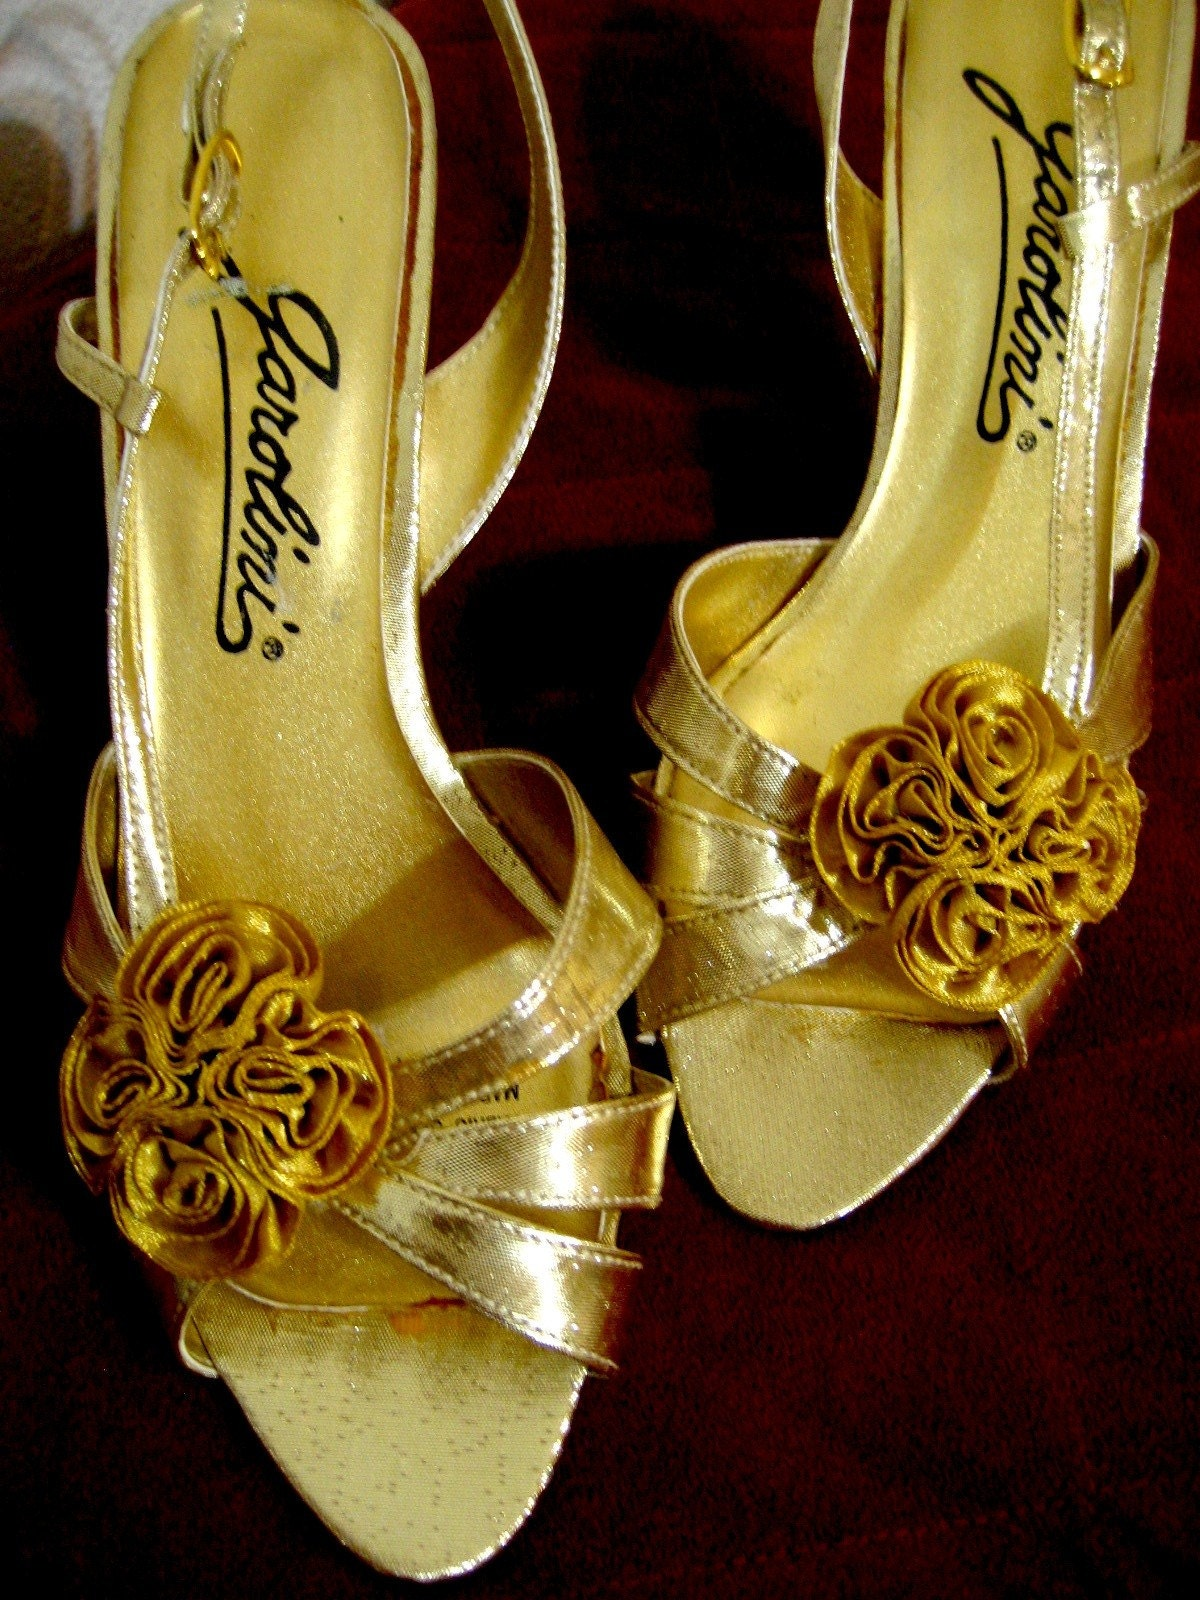 Vintage Gold Rosette Heels - Bridal or Formal